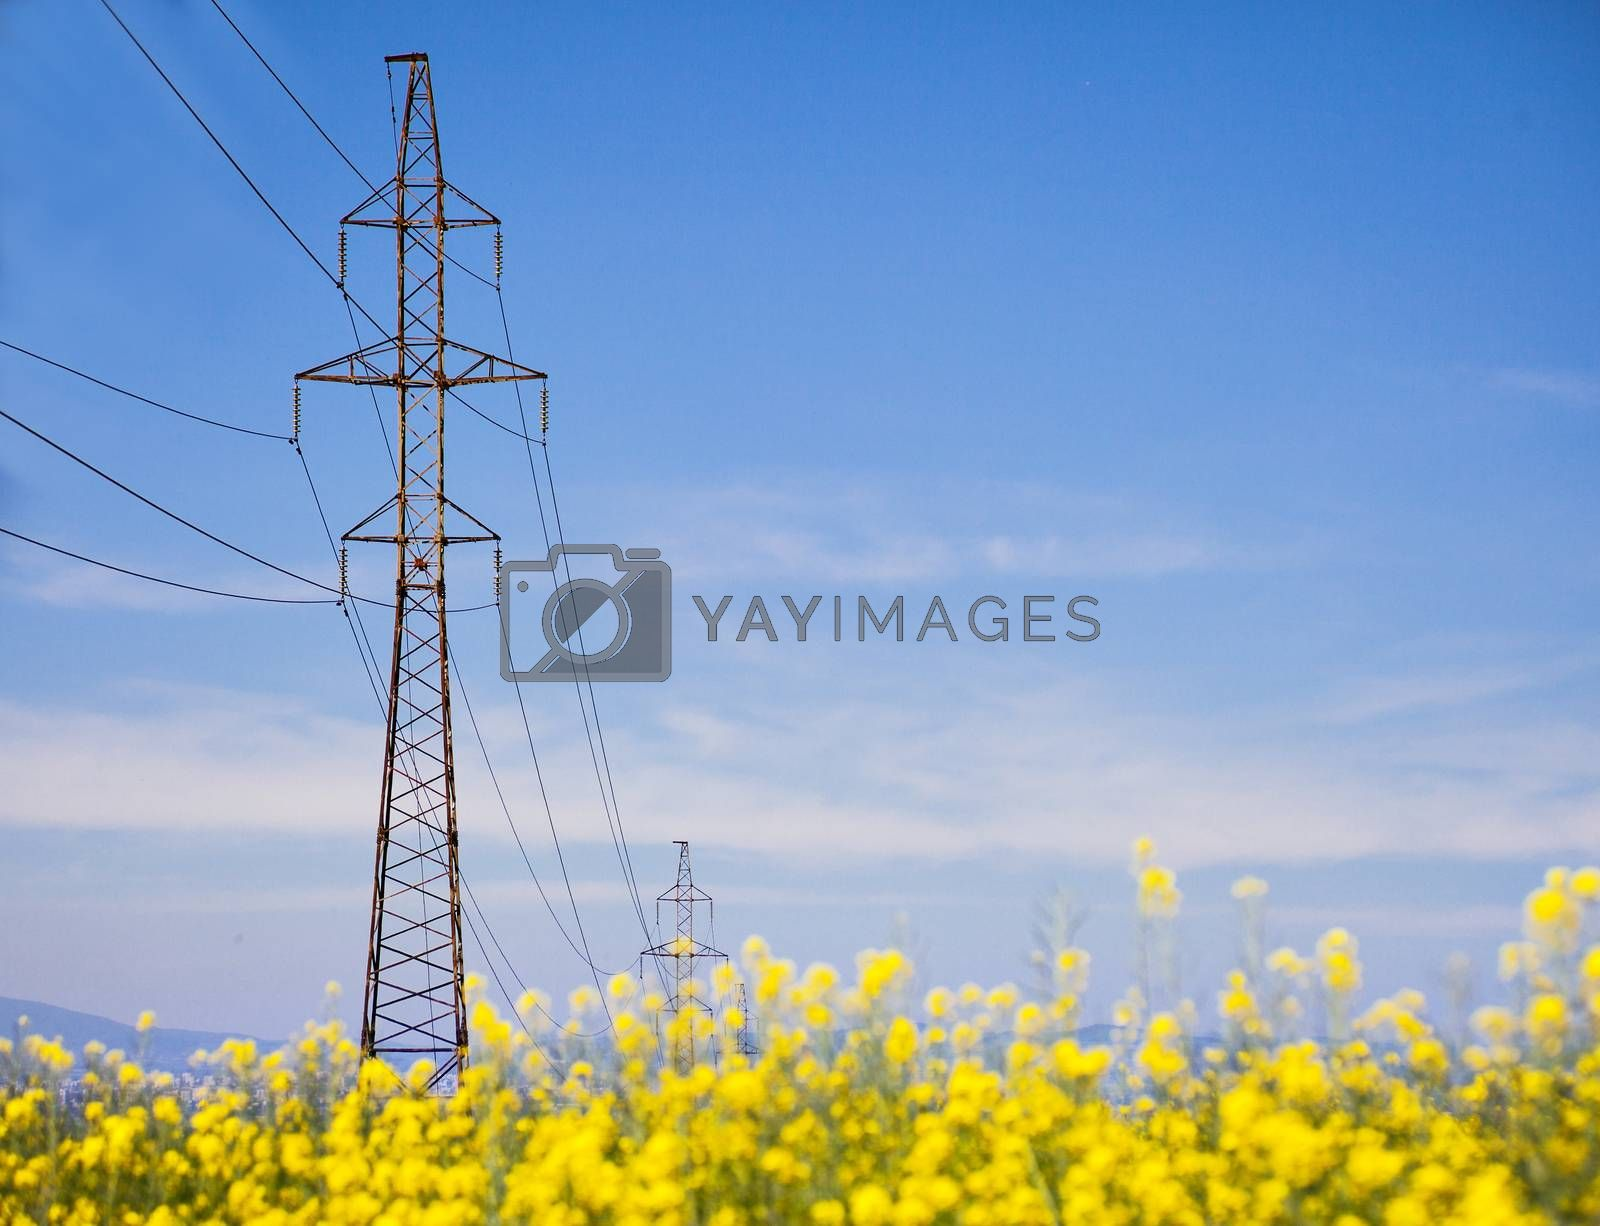 Vast field with yellow crops and a power lines on tall electrical pylon. Copy space.